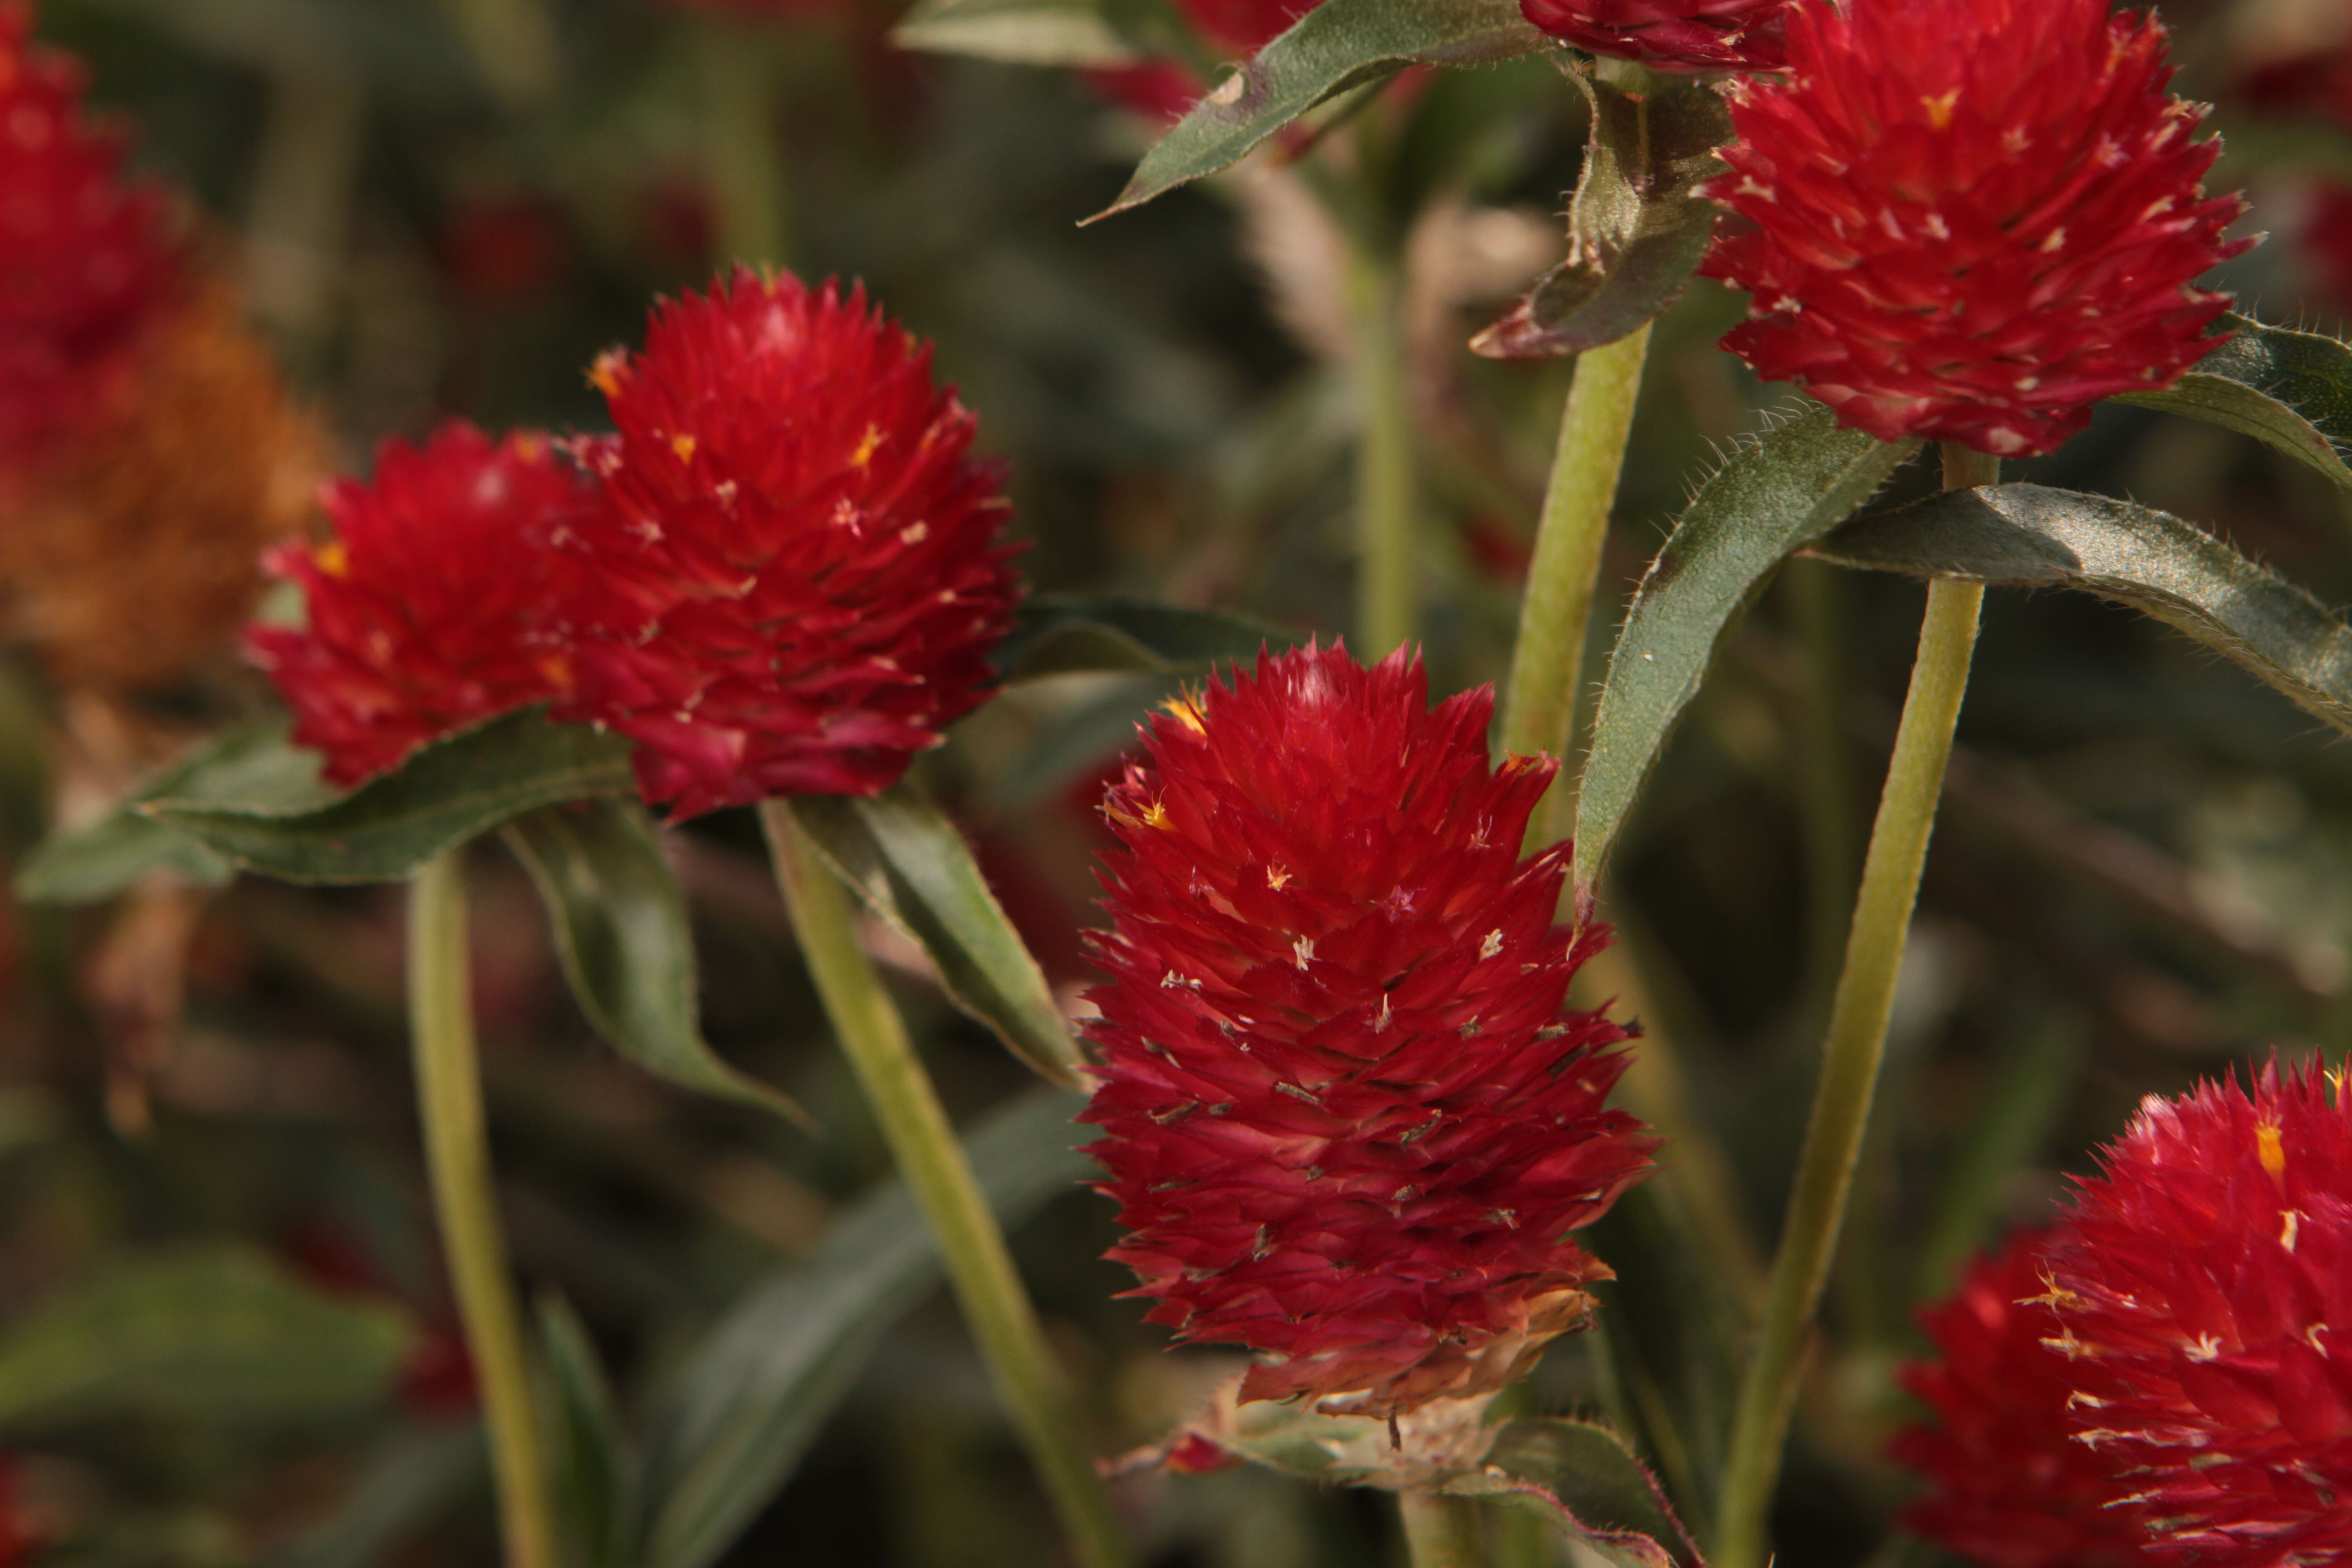 Forest™ Red Globe Amaranthus Gomphrena by Proven Winner Also, Strawberry Fields by Burpee but impossible to find locally.